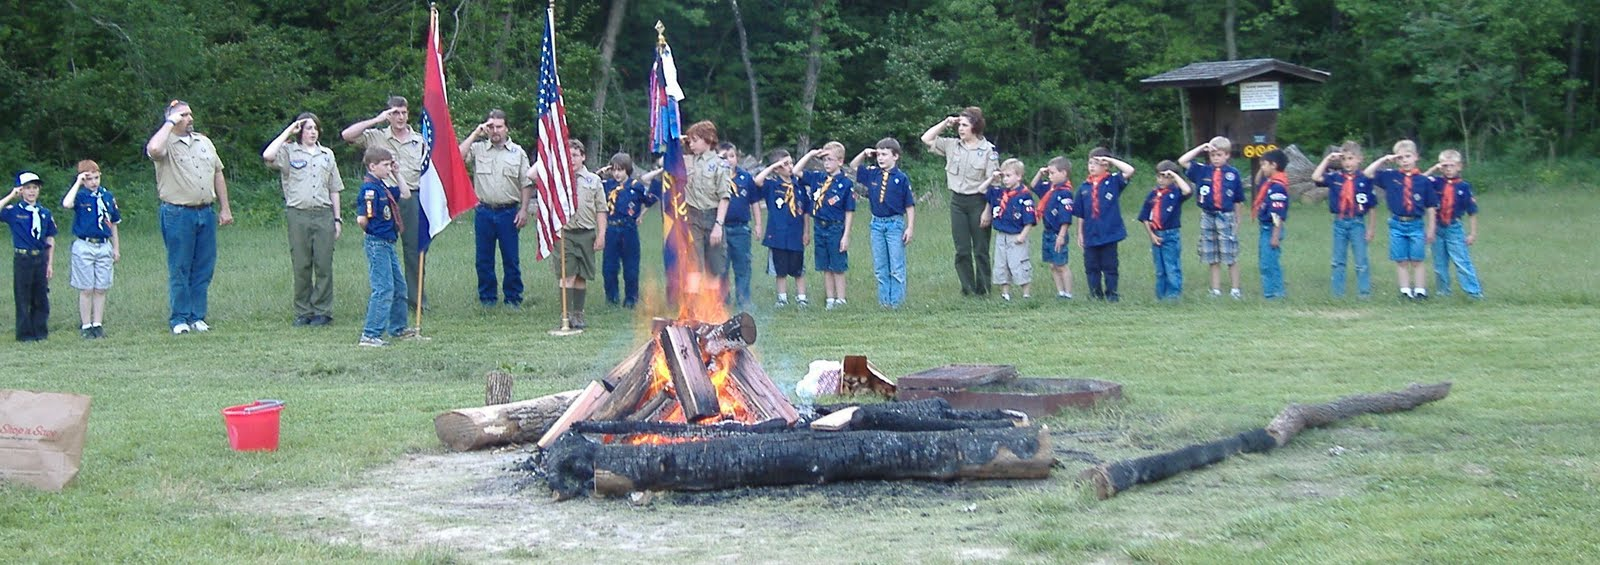 Candle Ceremony For Crossover Cub Scouts Party